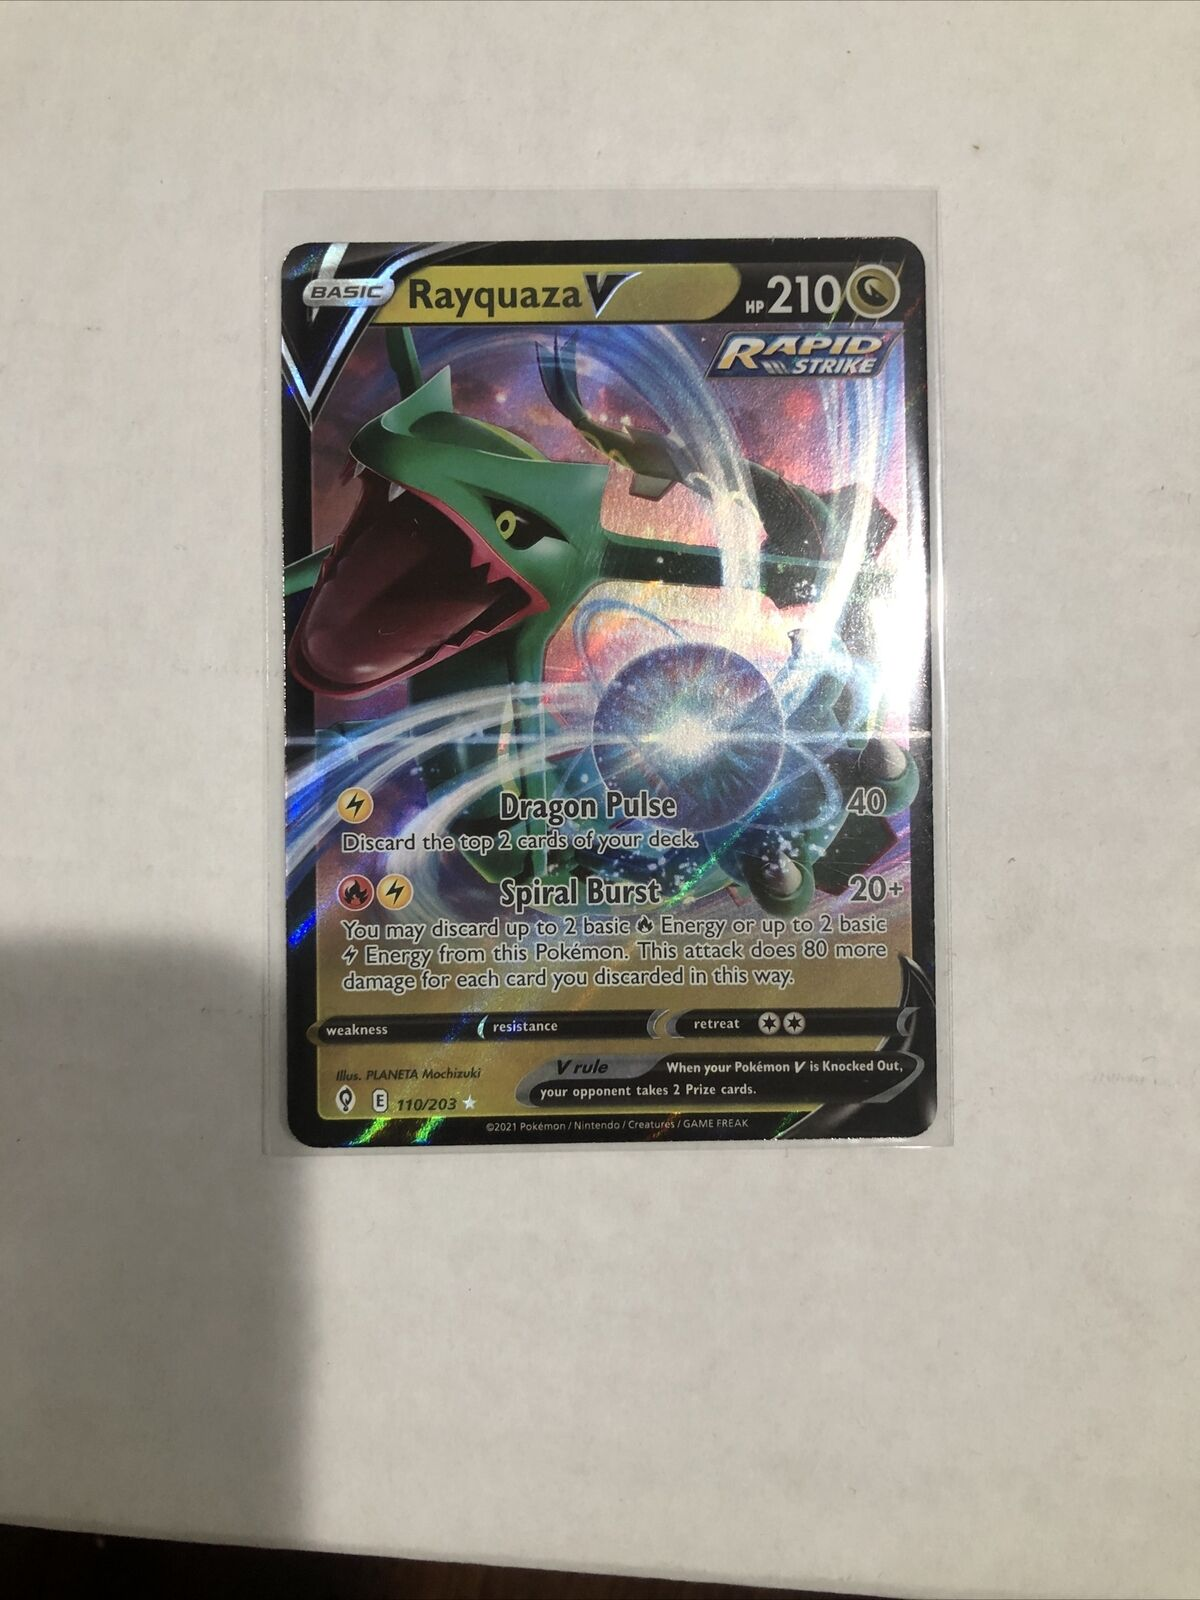 Rayquaza V 110/203 Evolving Skies Pokemon Mint Freshly Pulled And Sleeved Up - Image 2